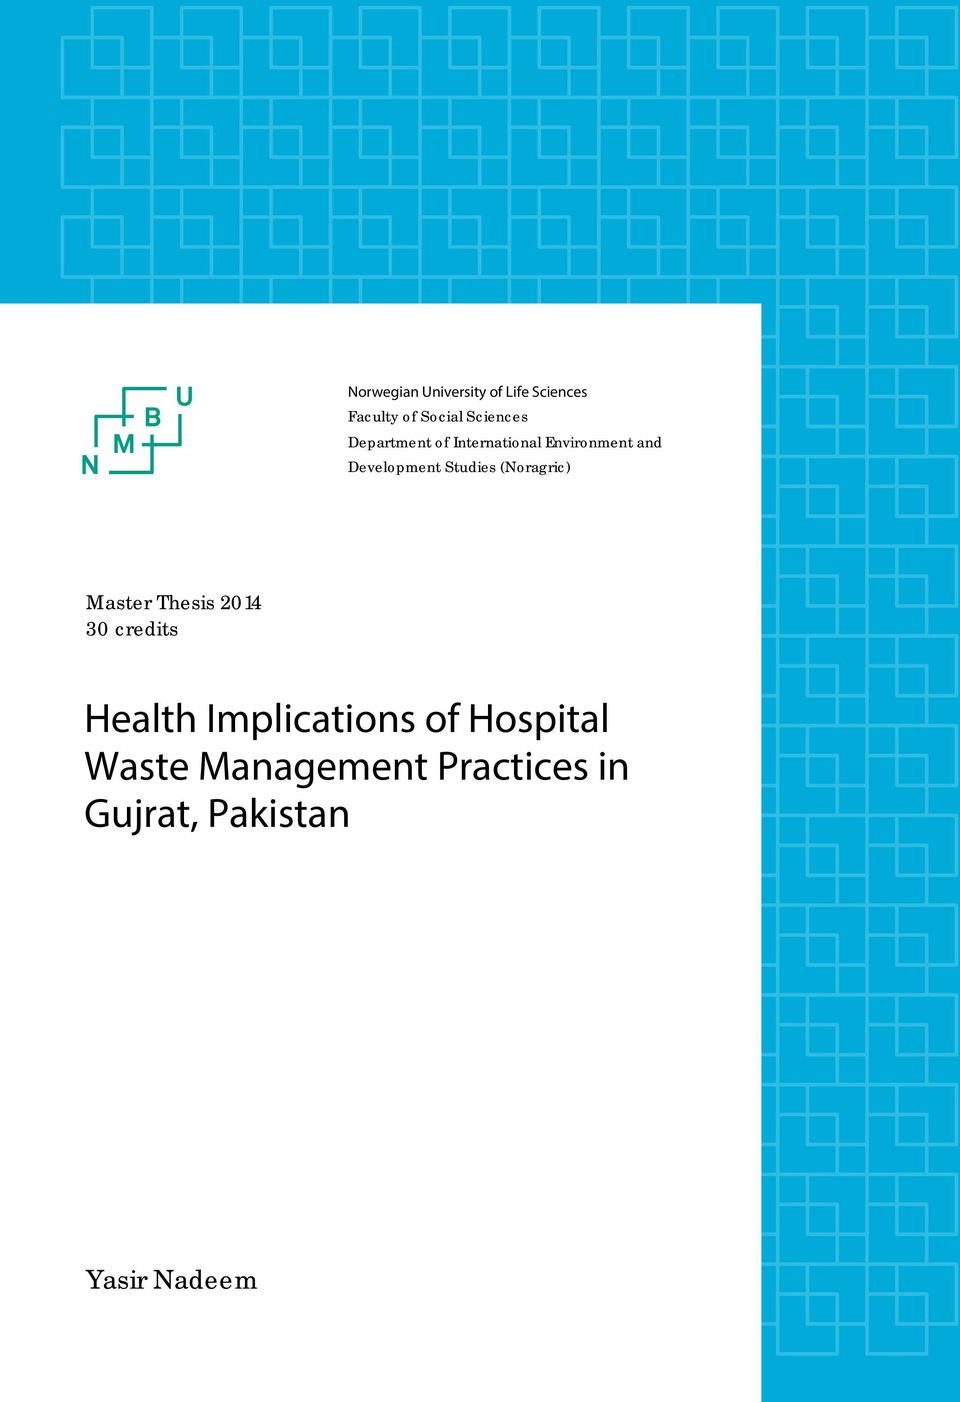 Health Implications of Hospital Waste Management Practices in Gujrat